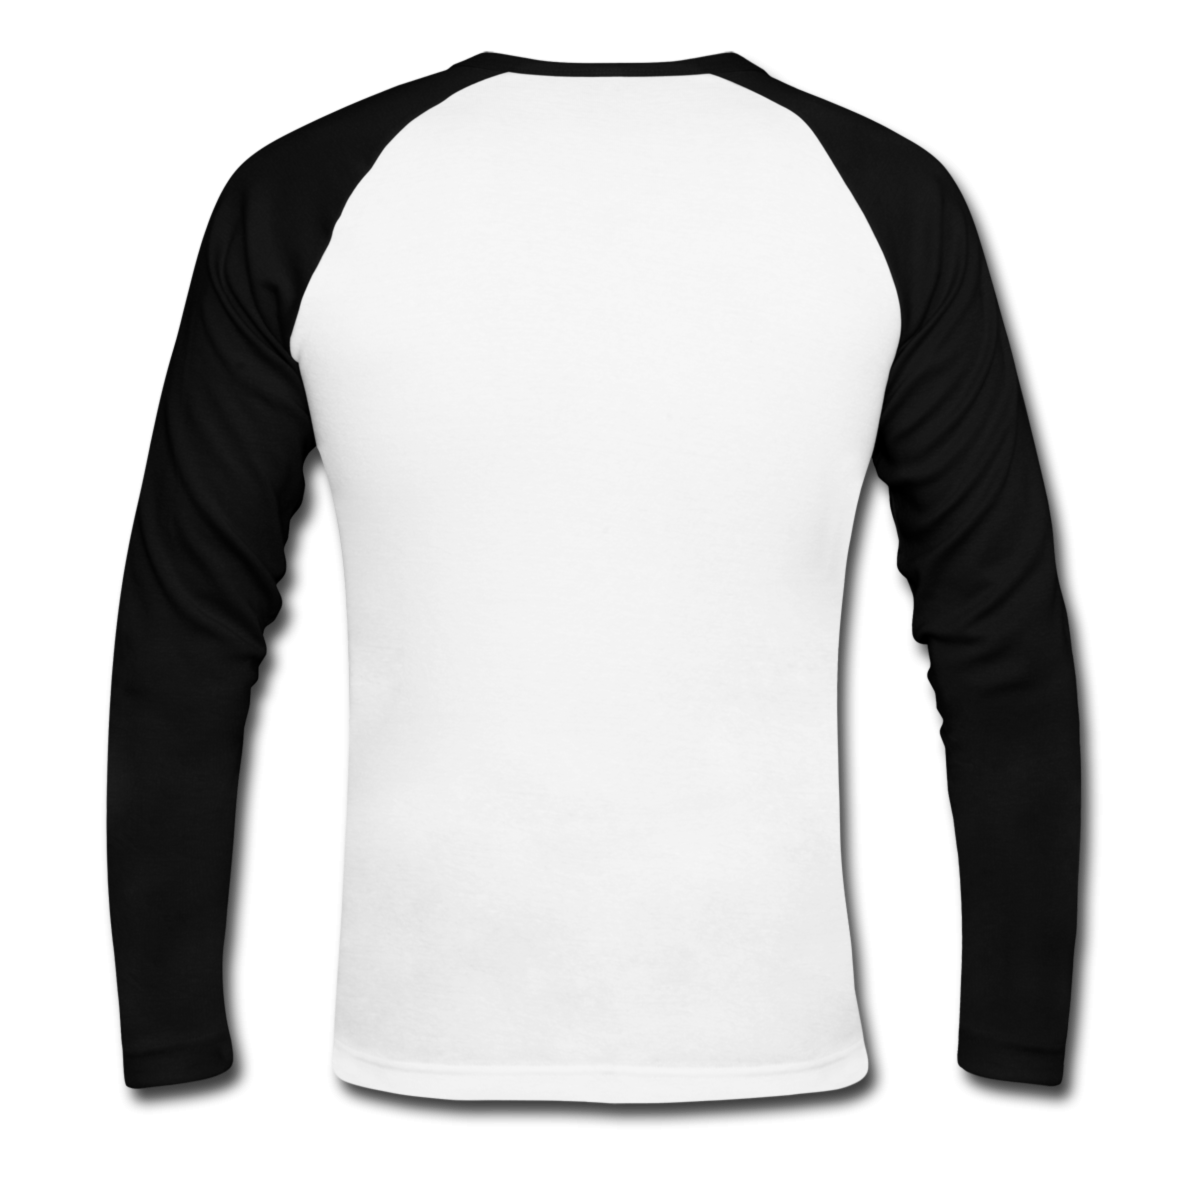 T shirt template png. Blank silhouette at getdrawings